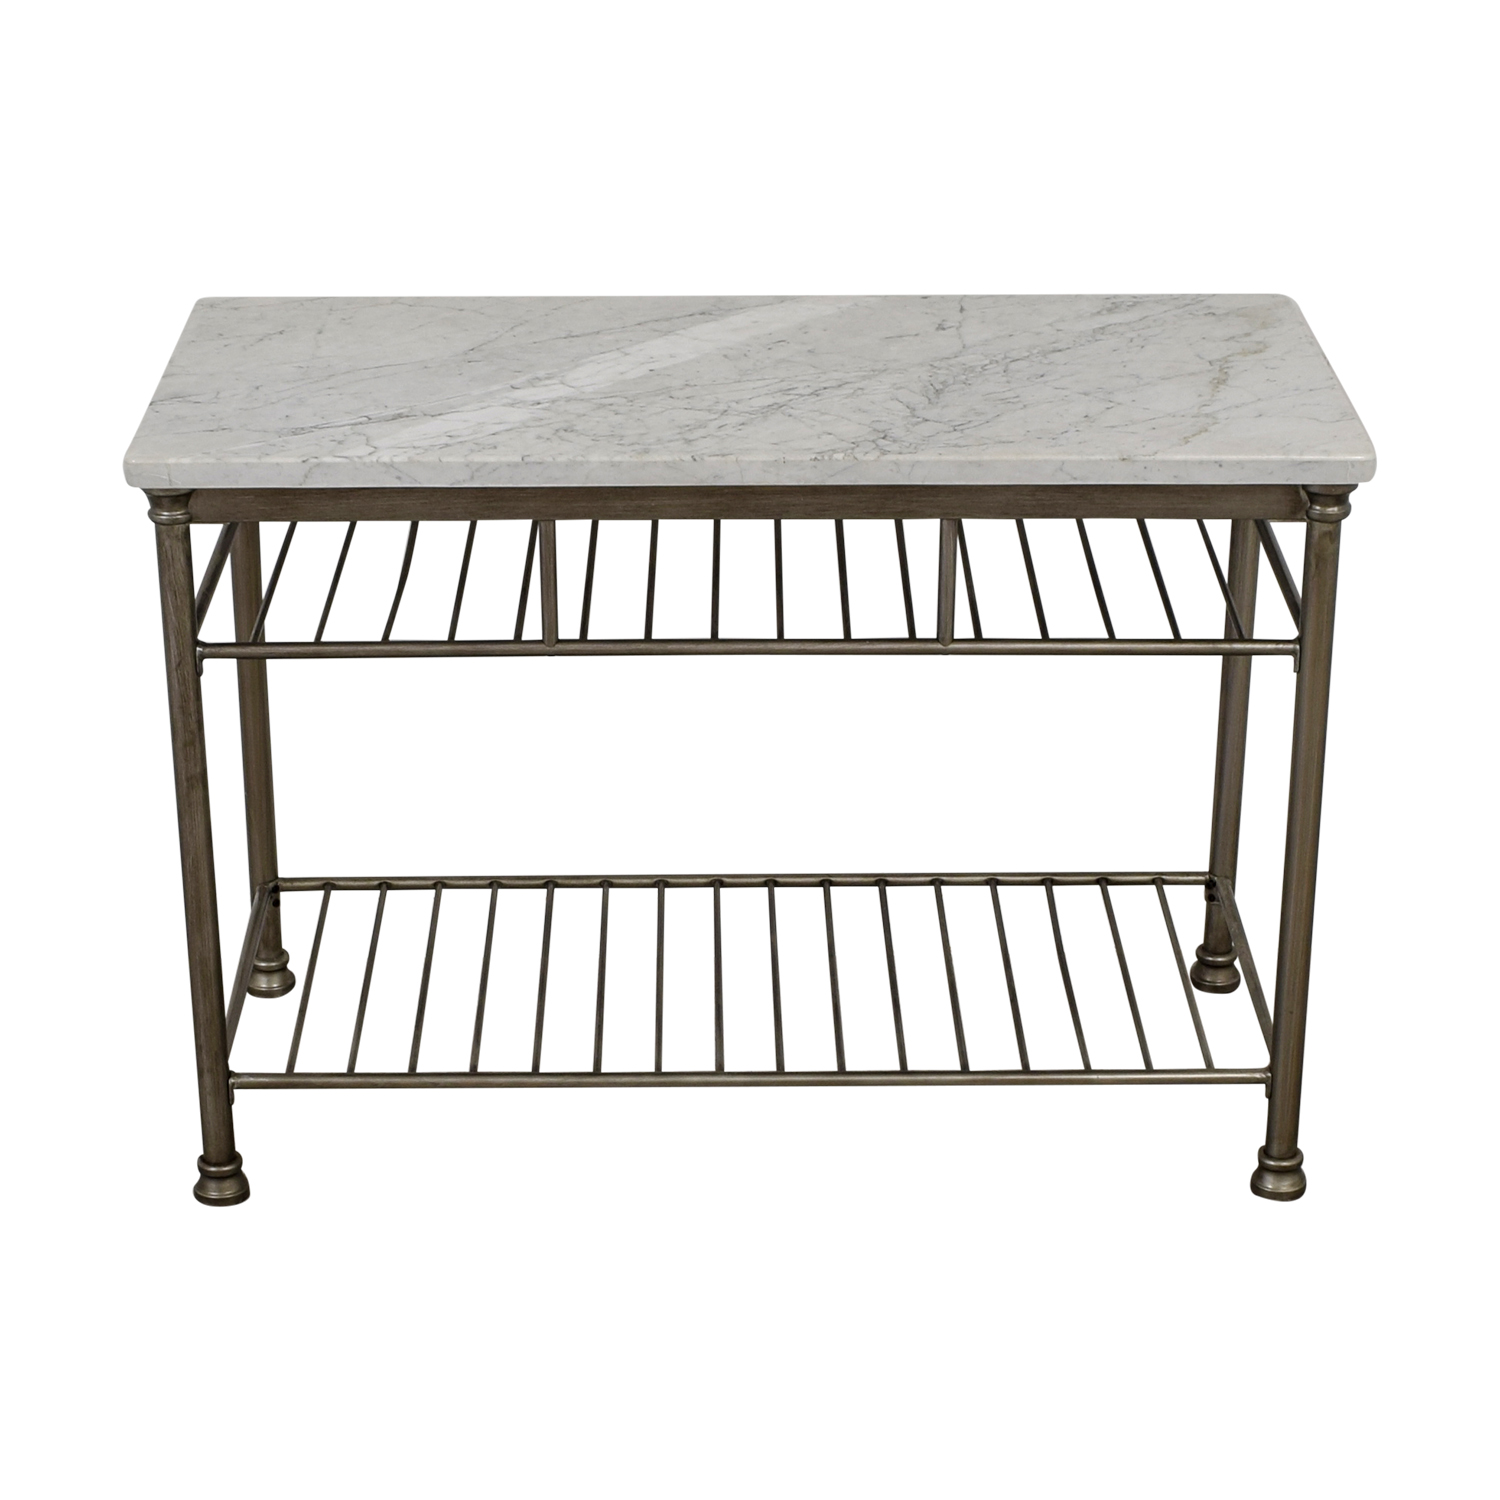 Marble Top and Brushed Stainless Steel Kitchen Island / Utility Tables